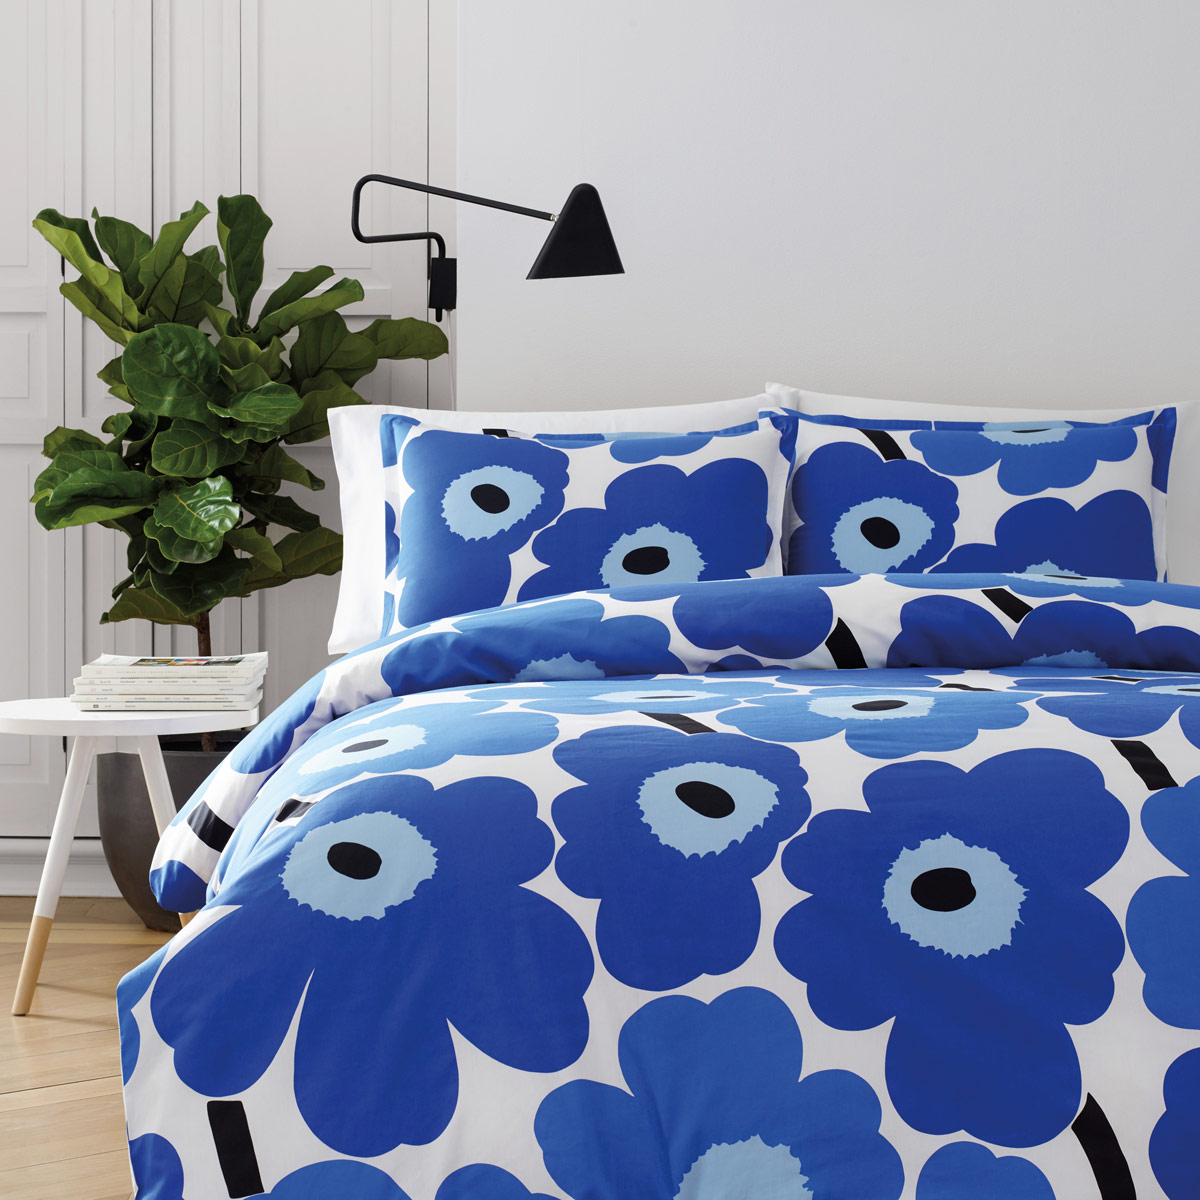 marimekko unikko blue twin duvet cover set marimekko unikko blue bedding. Black Bedroom Furniture Sets. Home Design Ideas